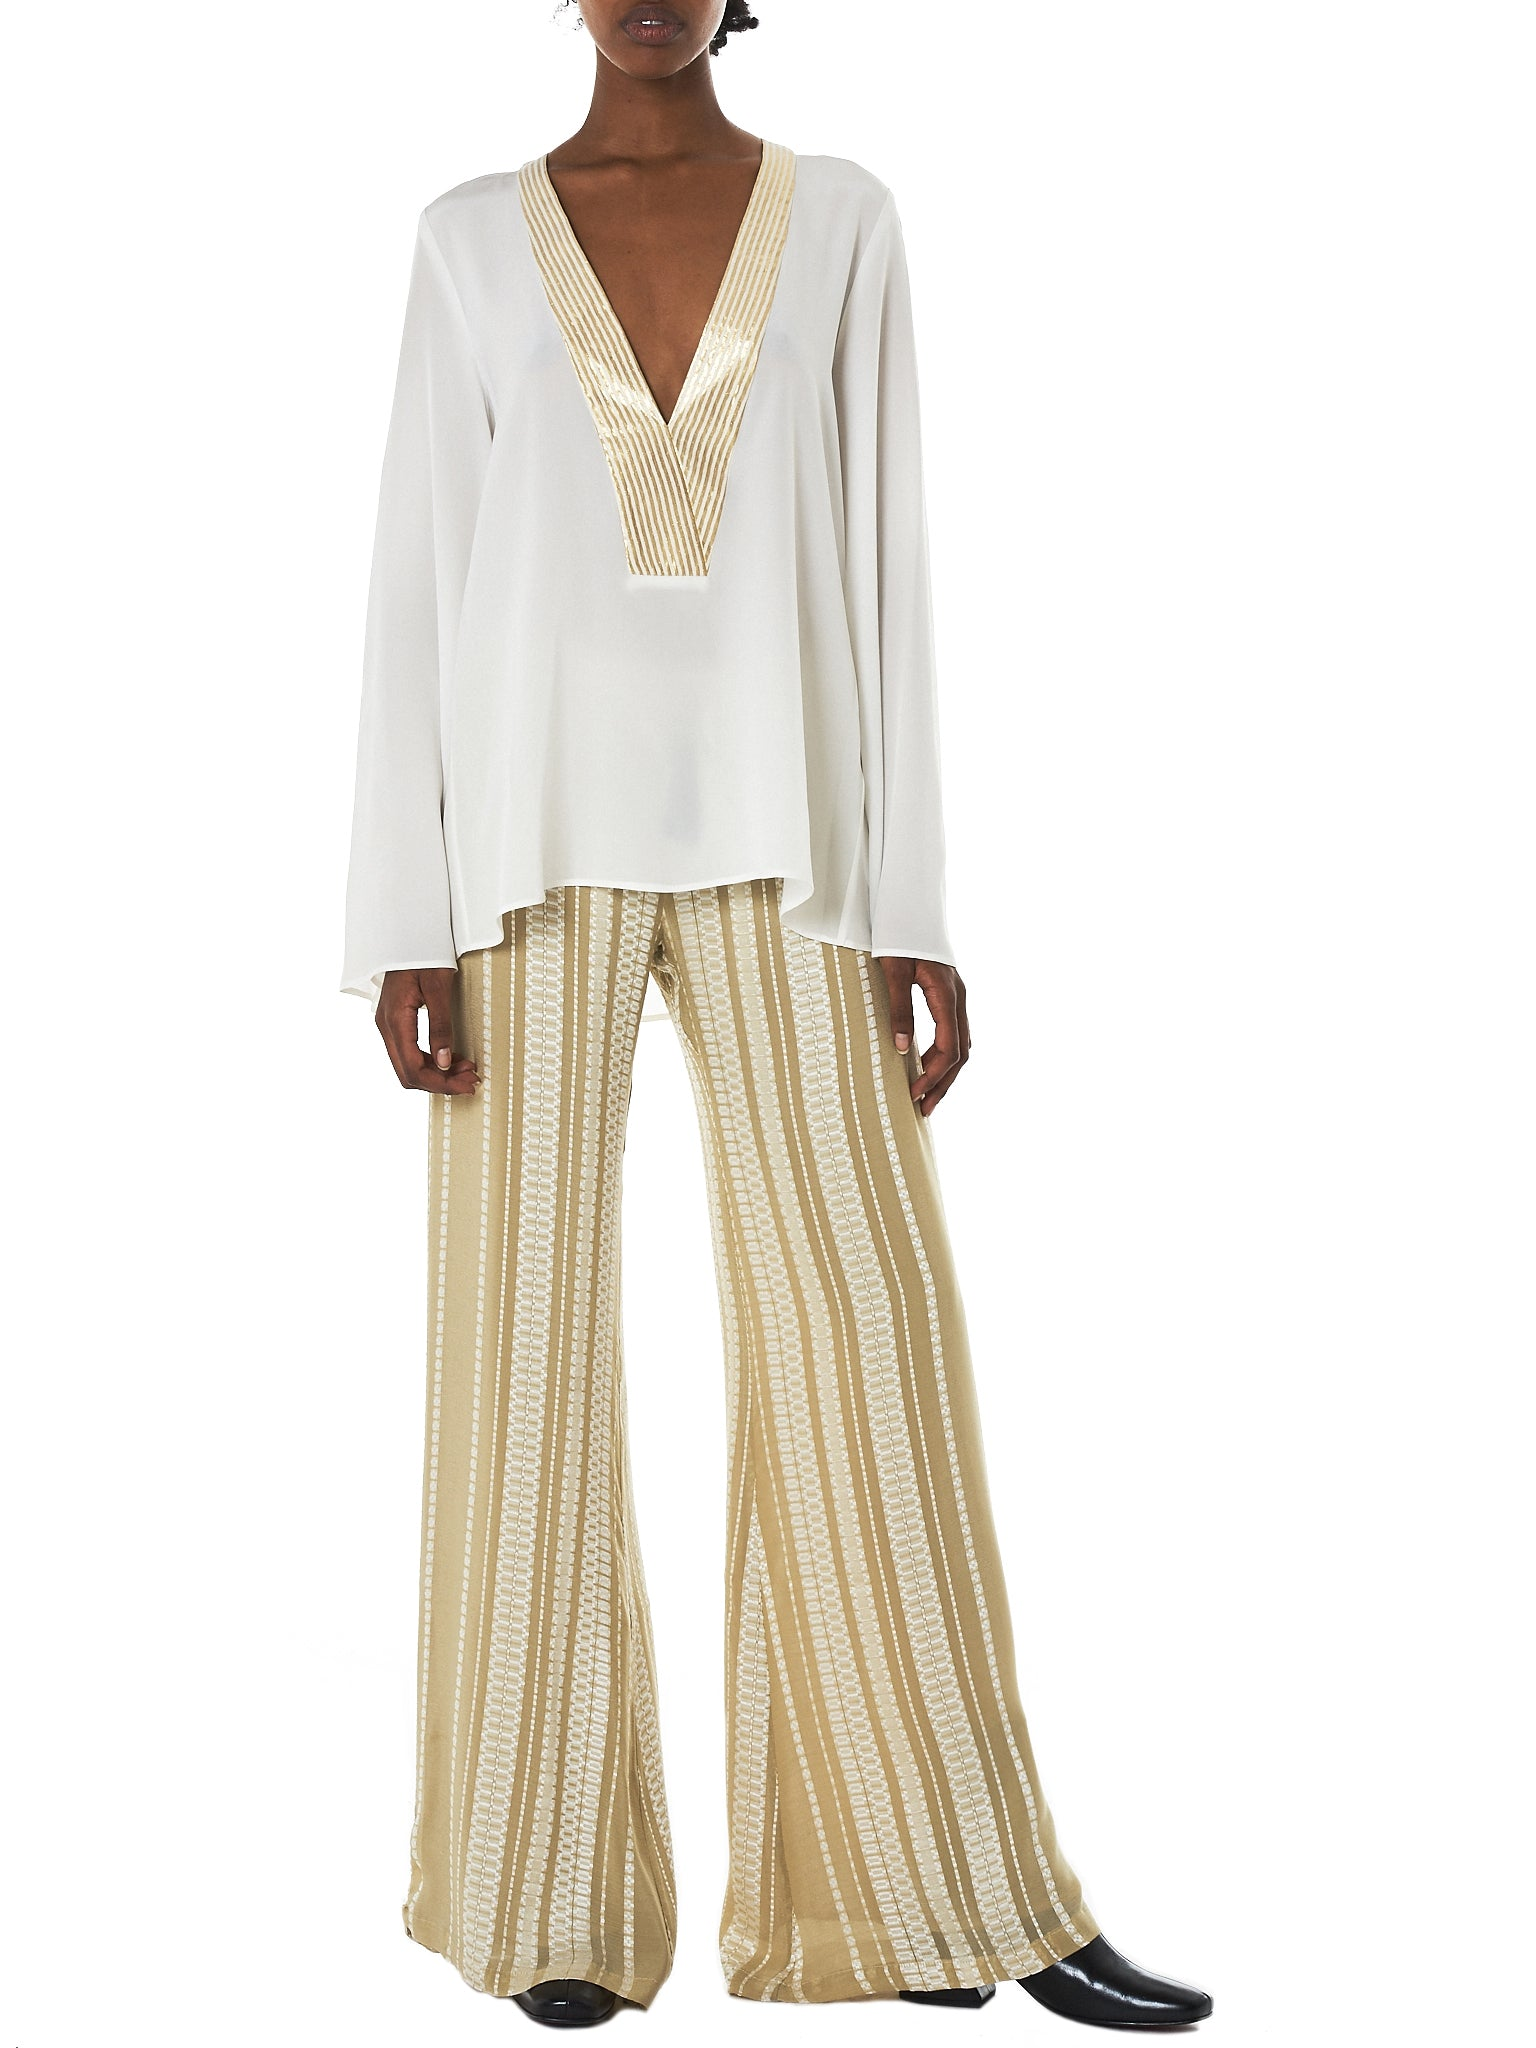 Zeus + Dione Gold Striped Blouse - Hlorenzo Style